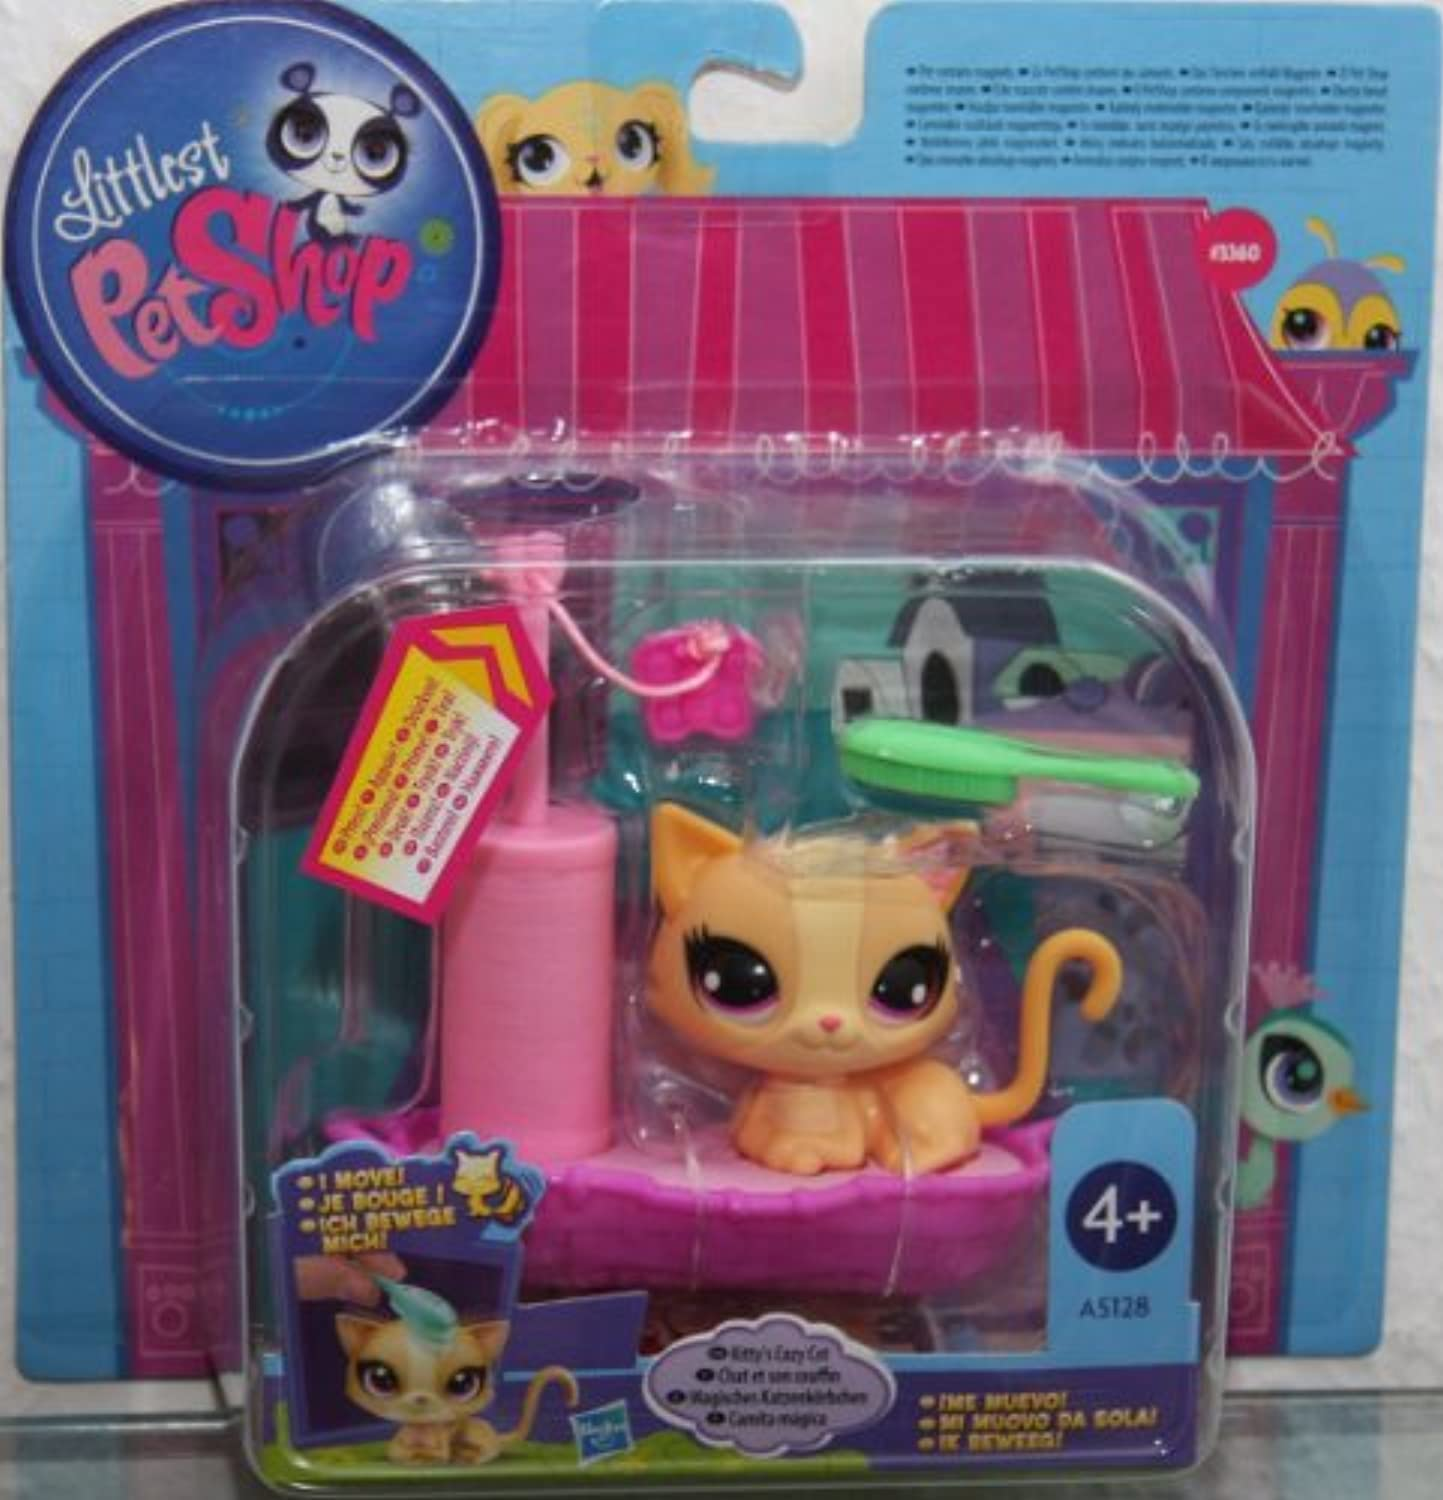 Littlest Pet Shop - I Move - Magic Motion - #3360 CAT / KITTY'S COZY COT - Cat Brush Bed Post - A5128 - Hasbro by Littlest Pet Shop [並行輸入品]